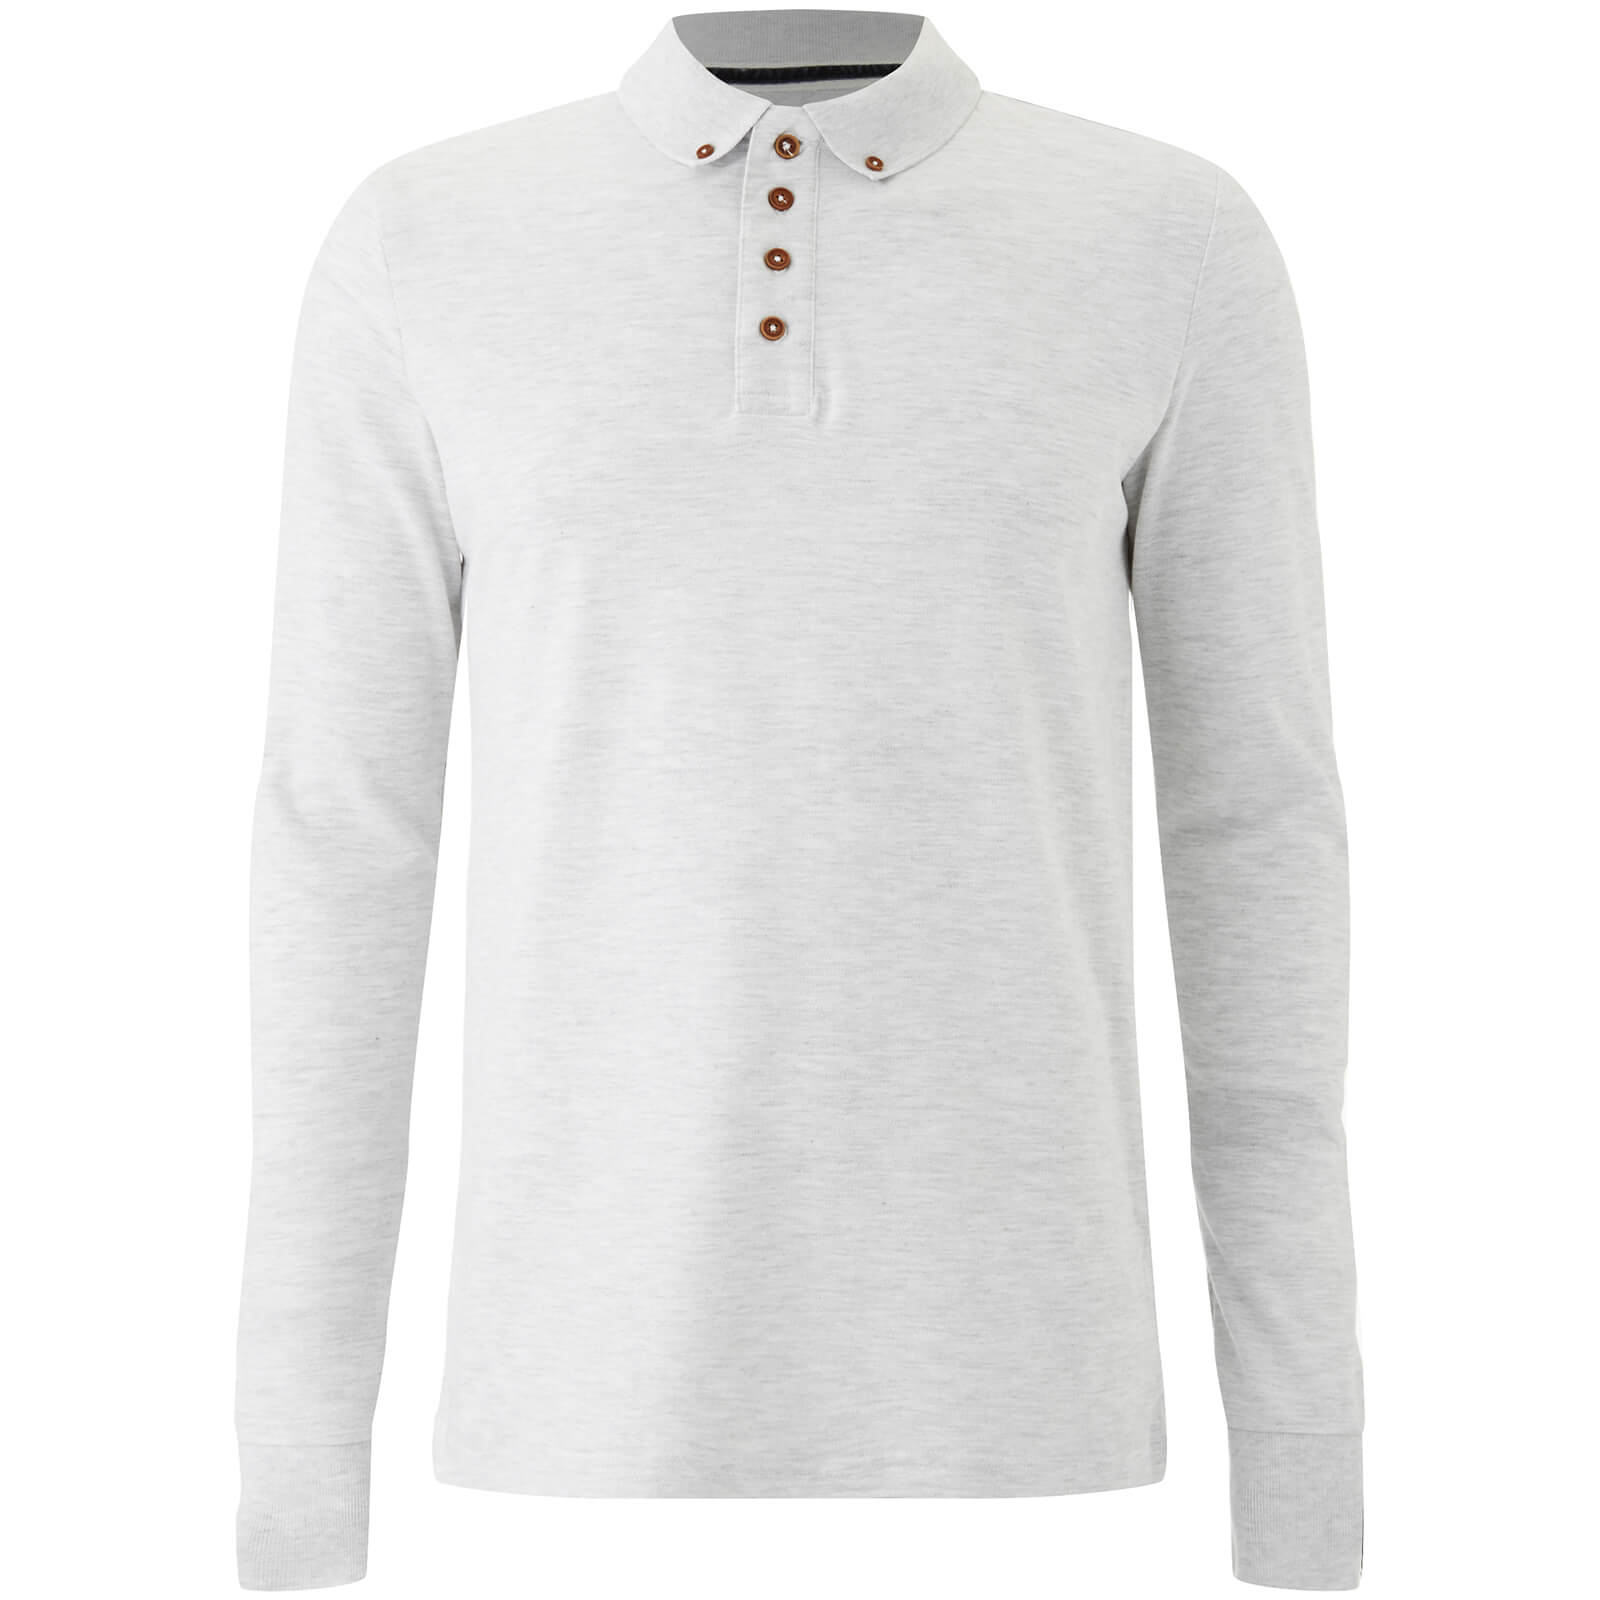 d35dc613555 Brave Soul Men's Lincoln Long Sleeve Polo Shirt - White Marl. Description